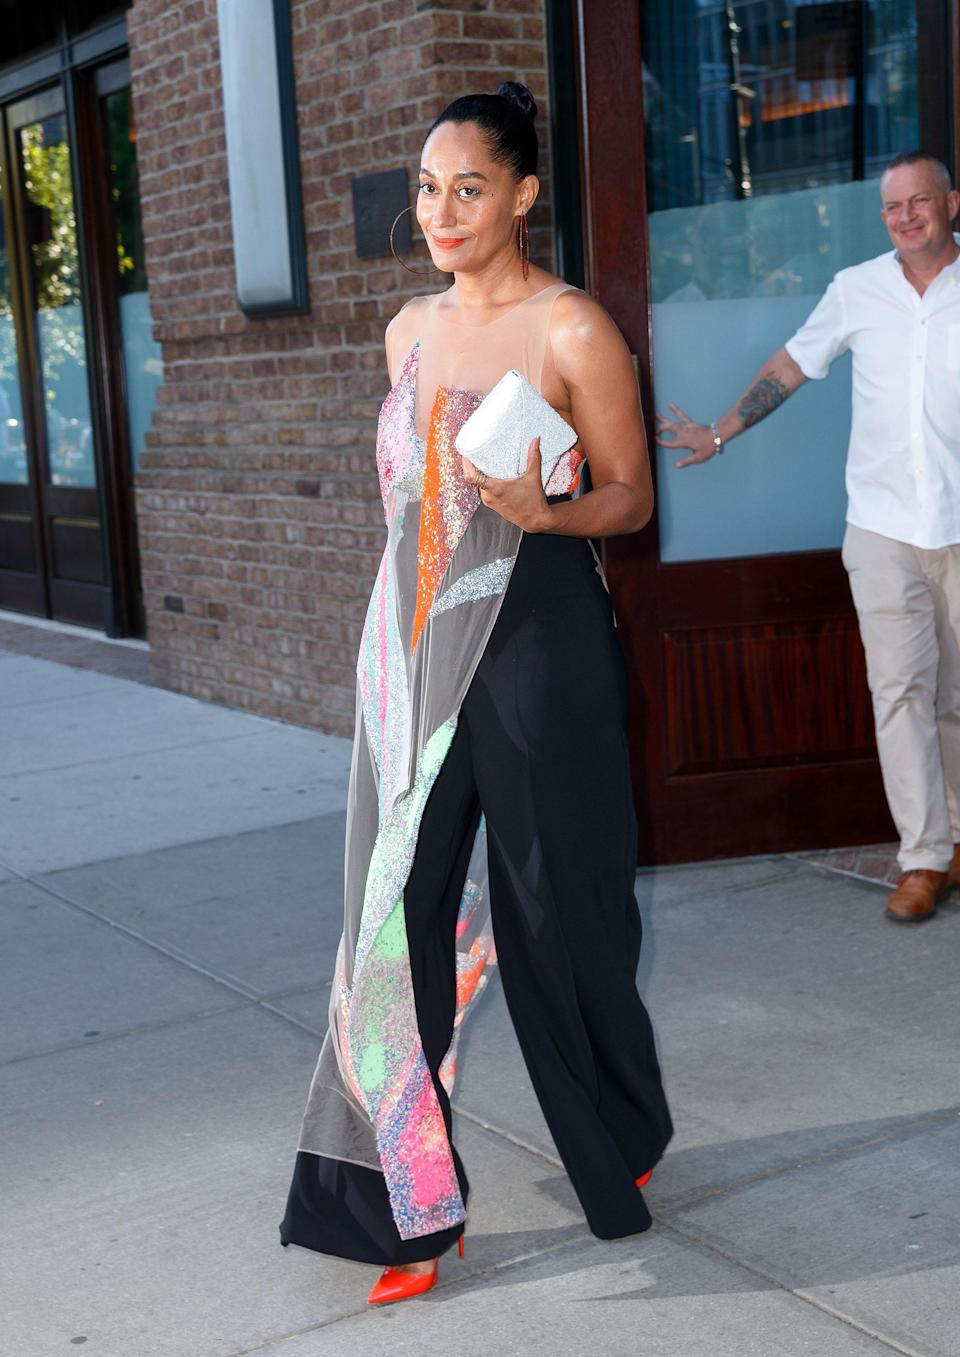 <p>The actress nailed it in the style stakes once more, wearing a sheer overlay gown by Germanier which she wore with high-waisted black trousers and a pair of orange pumps by Christian Louboutin to the ACE awards.<br><em>[Photo: Getty]</em> </p>